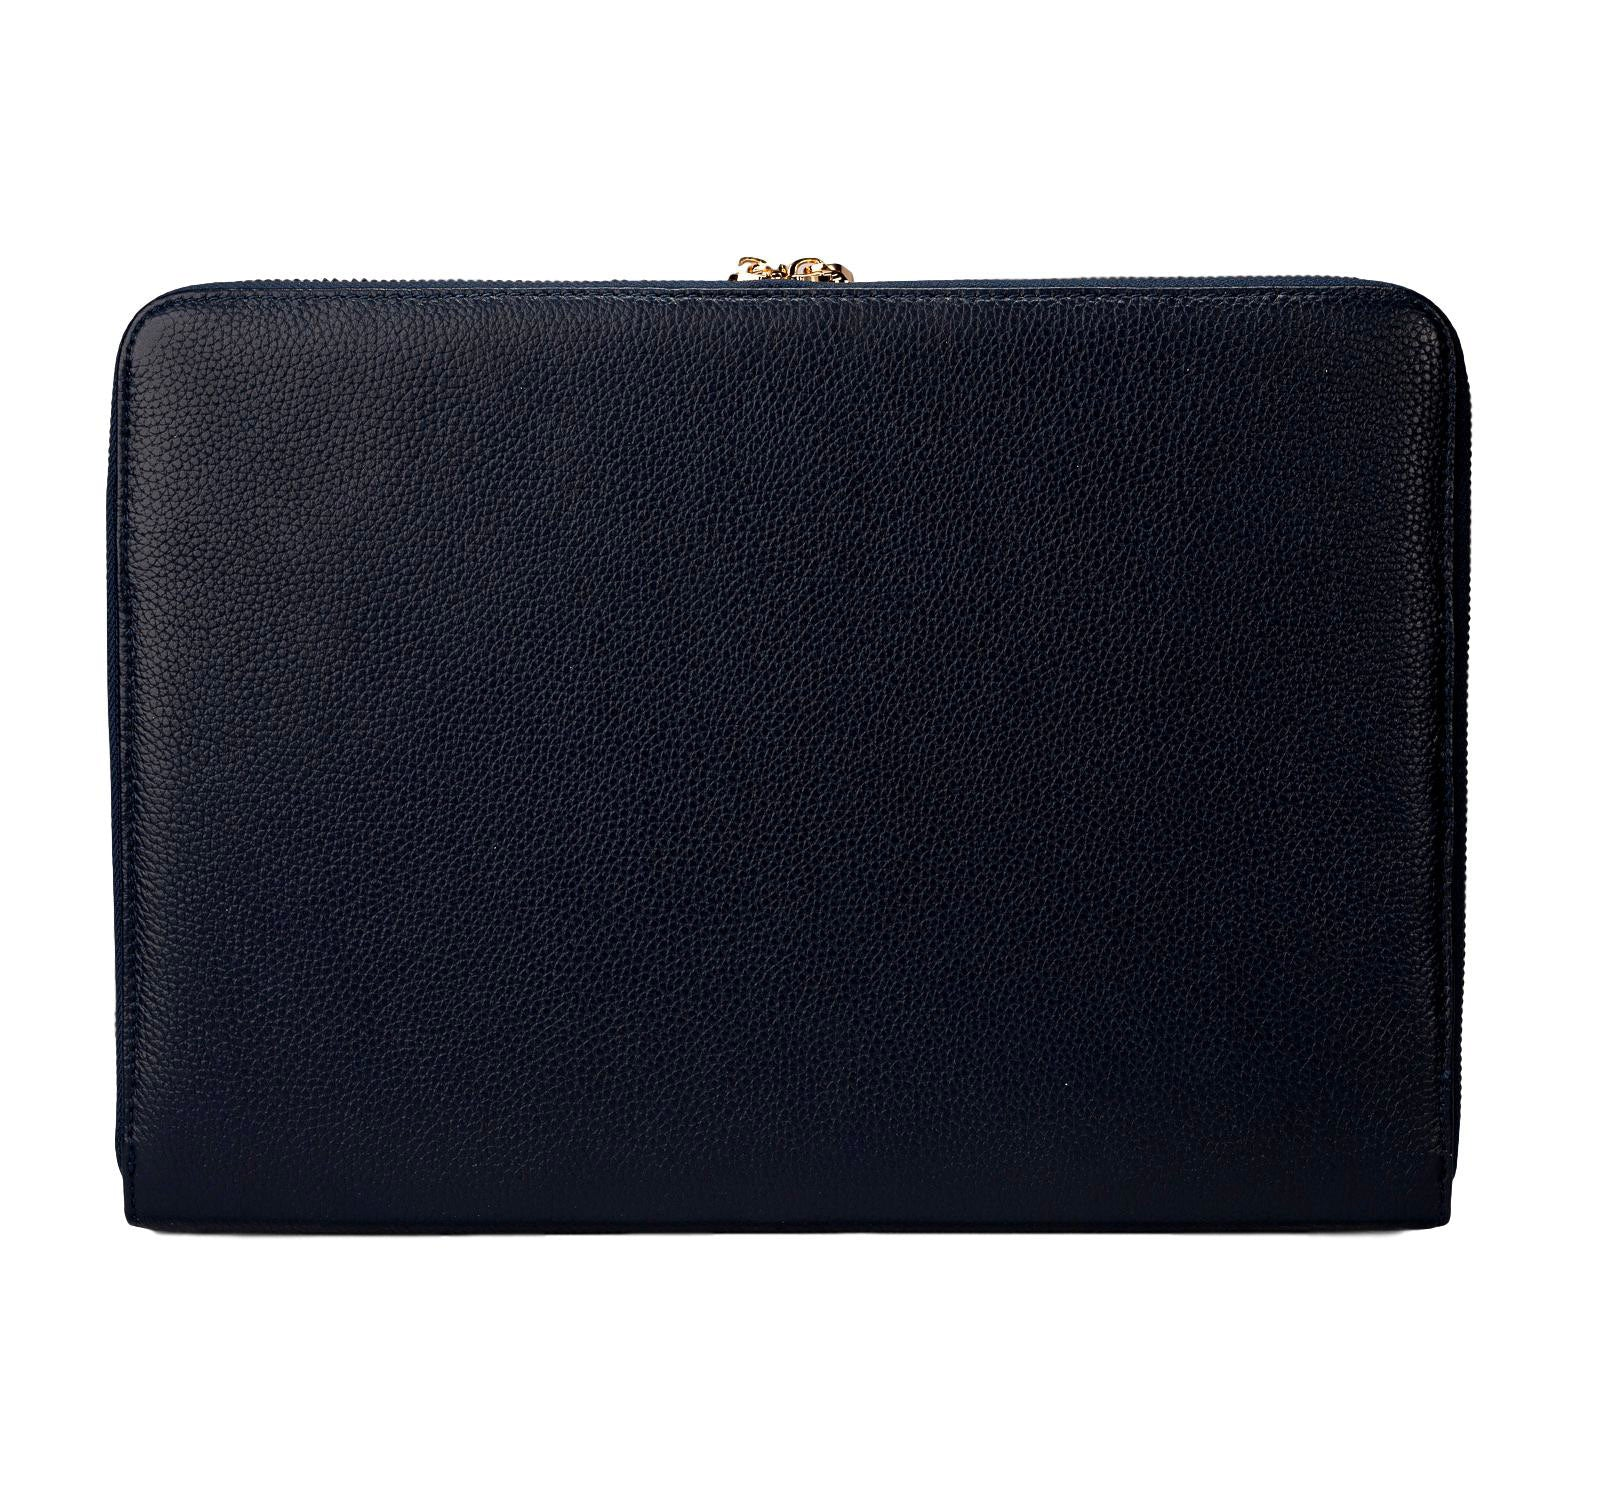 Mon Purse Pebbled Laptop Bag 13